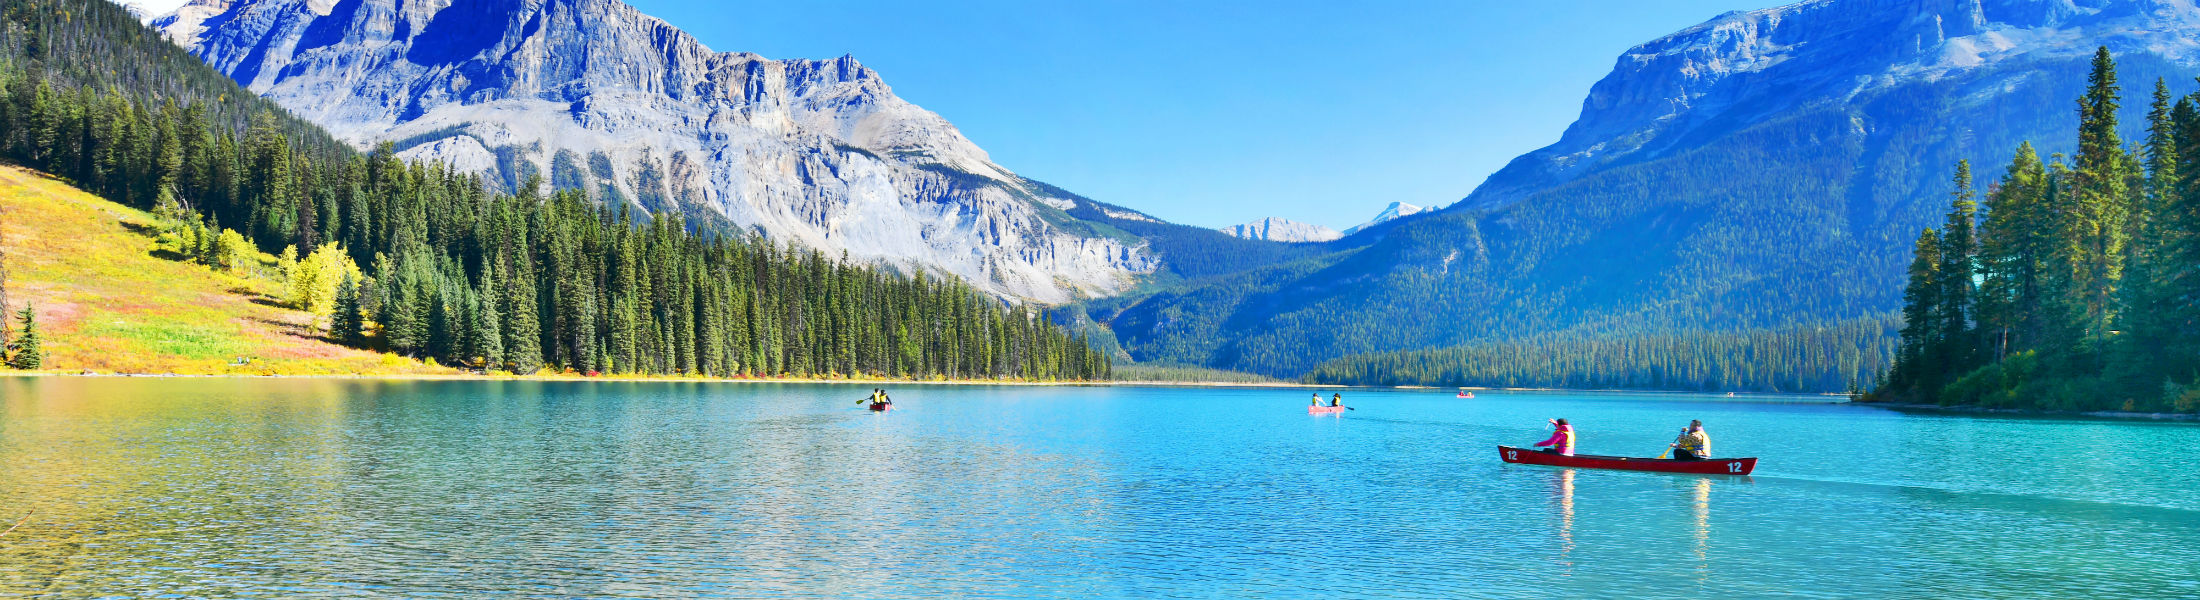 Emerald LakeYoho National Park in Canada